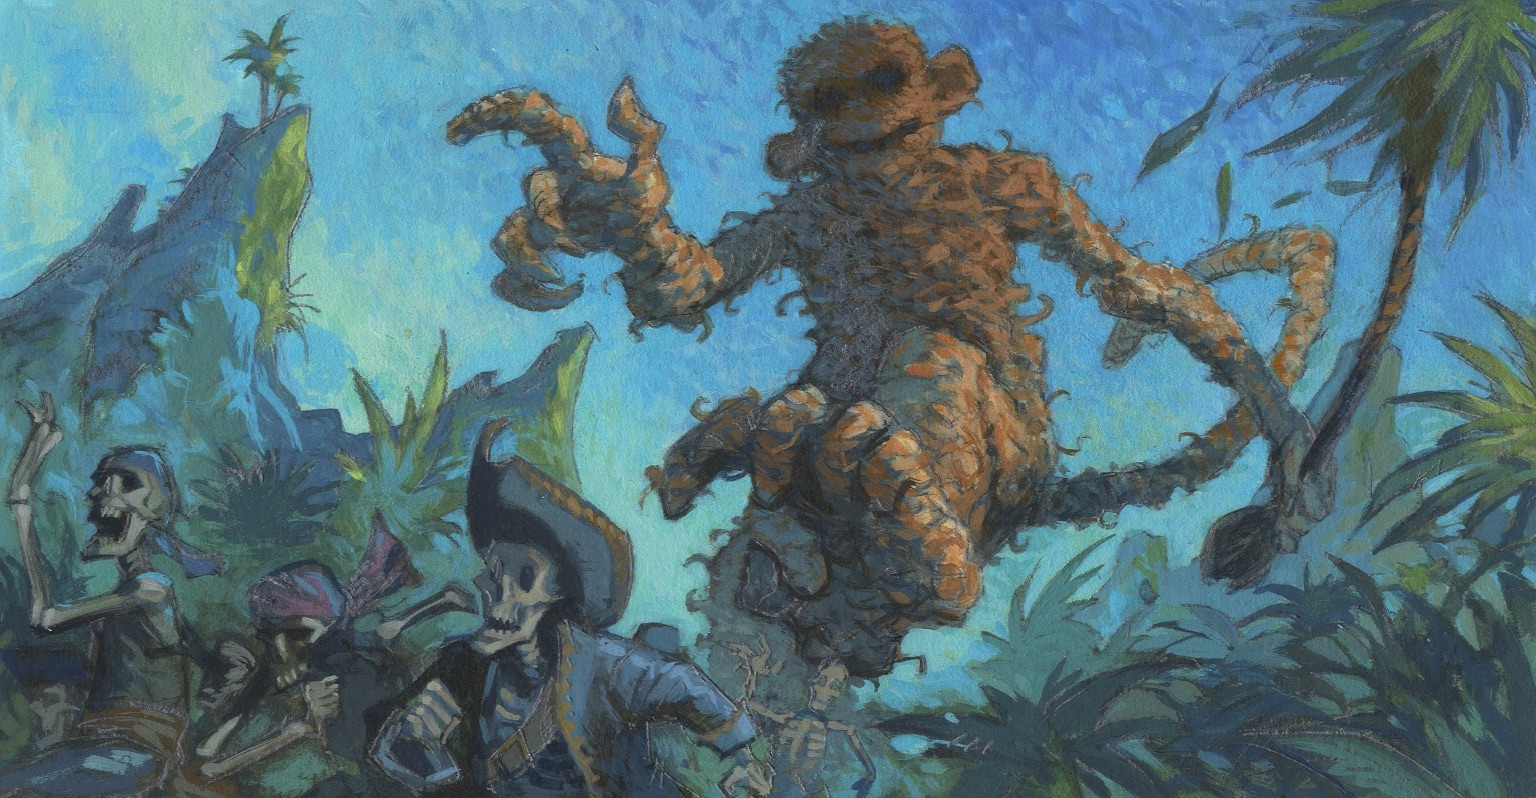 An illustration shows a giant monkey chasing a pirate